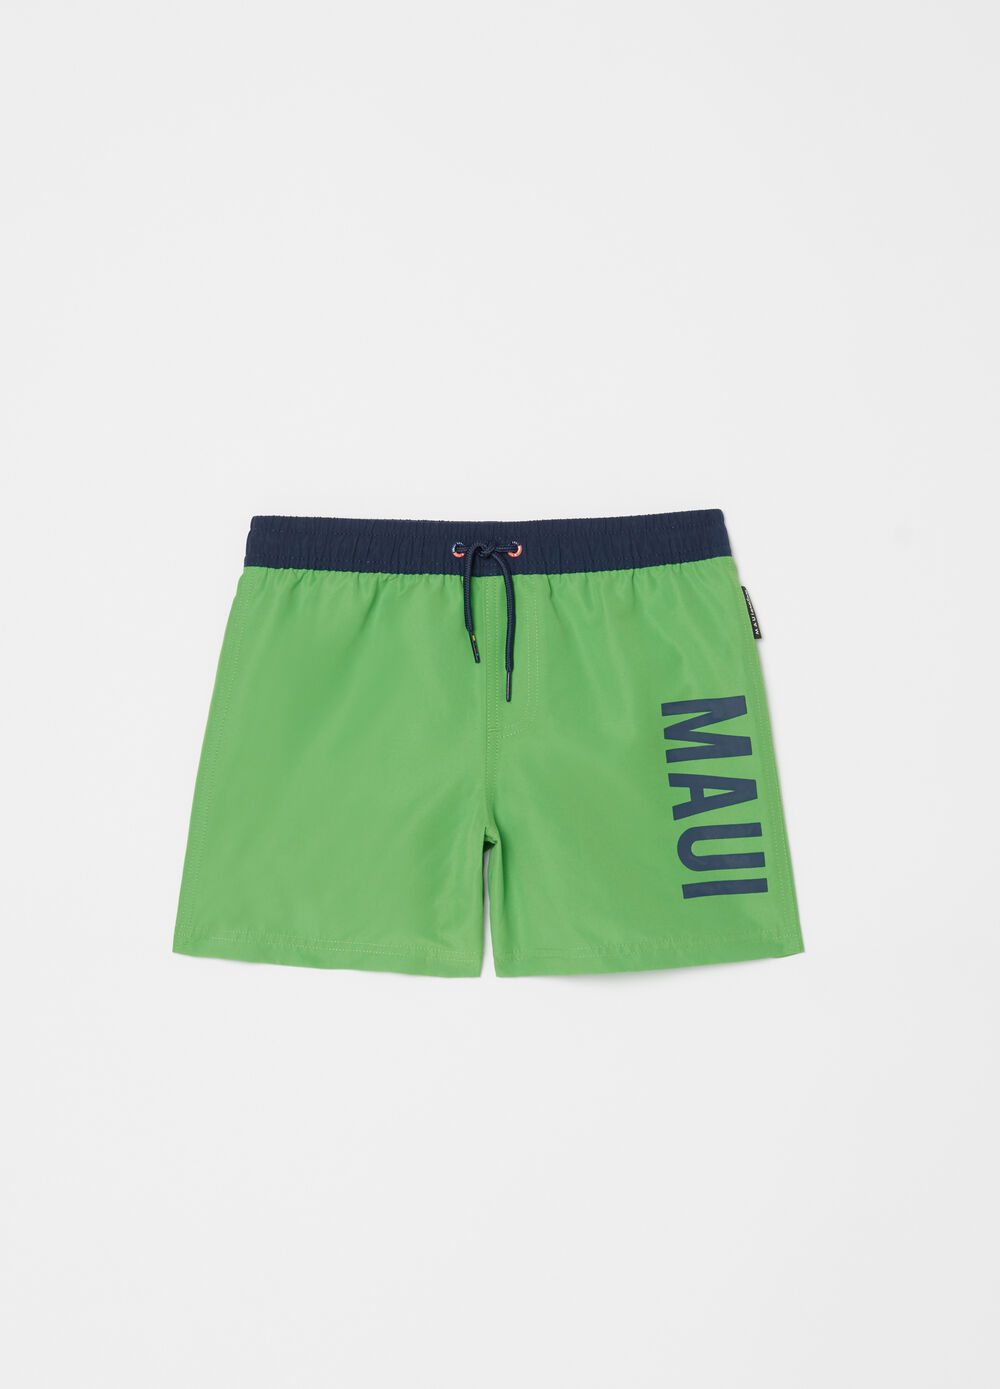 Printed swim boxer shorts by Maui and Sons